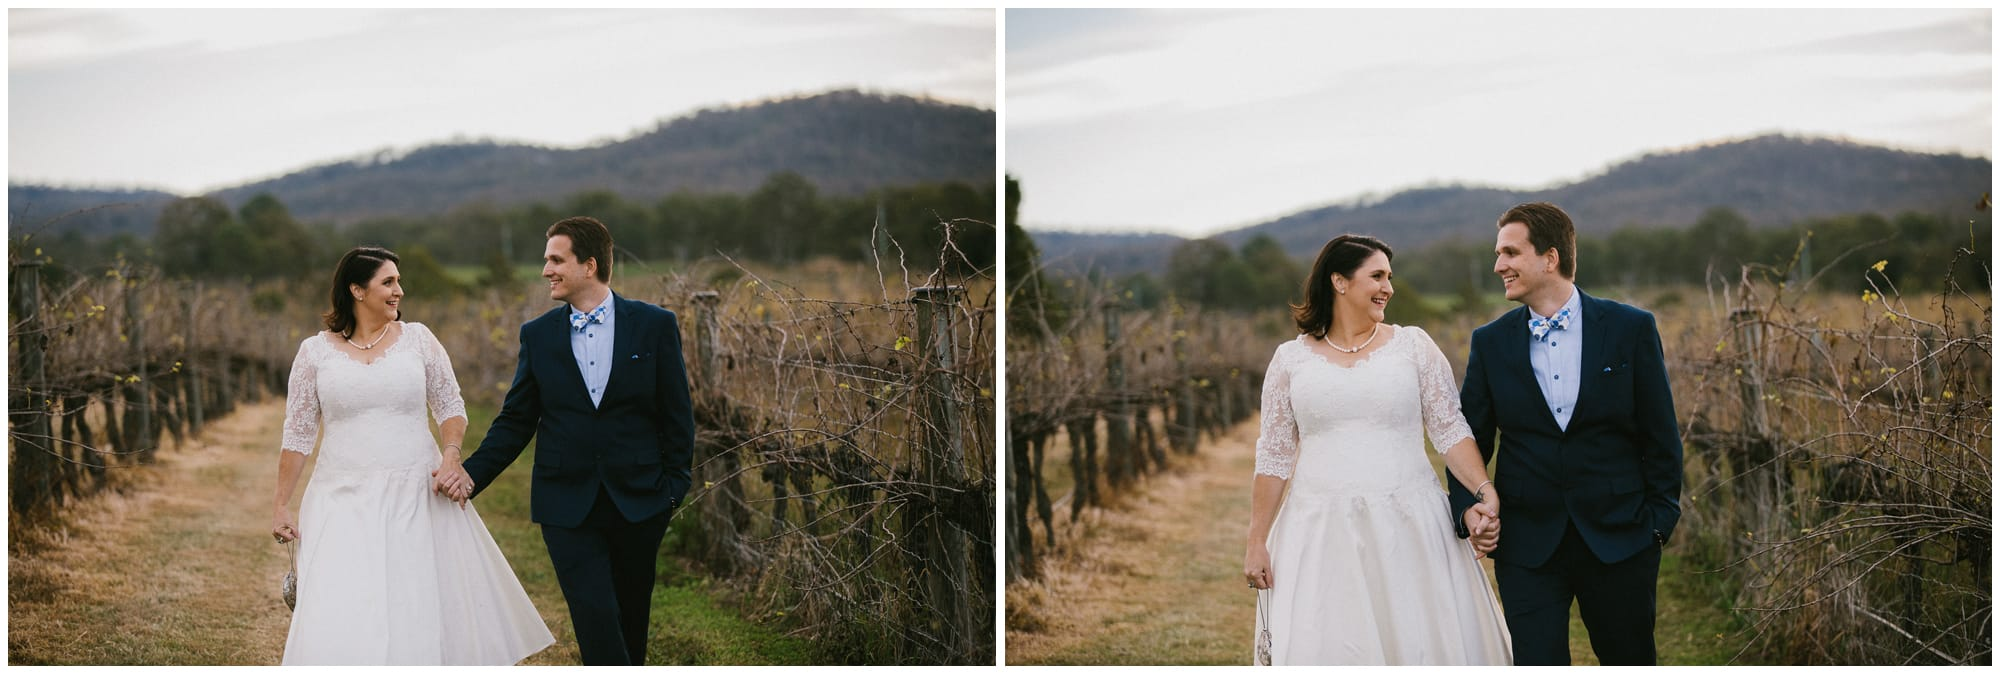 Albert River Wines wedding photograph